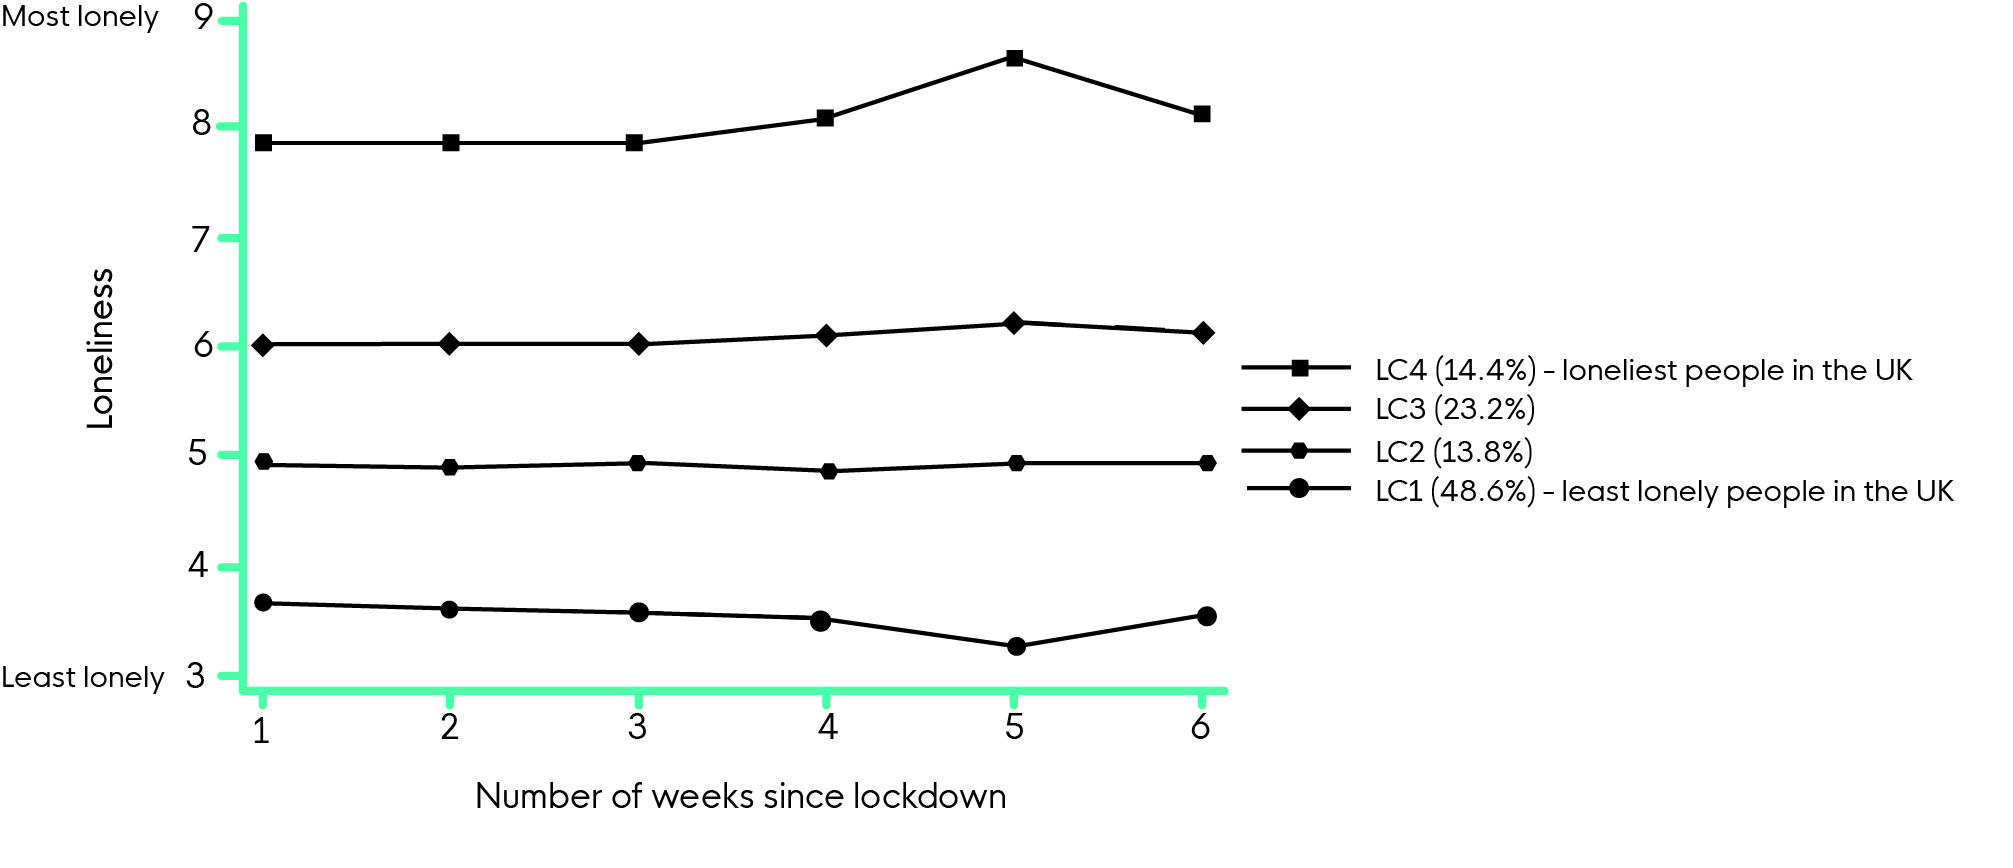 Graph showing the least and most lonely people in the UK during lockdown over the course of six weeks